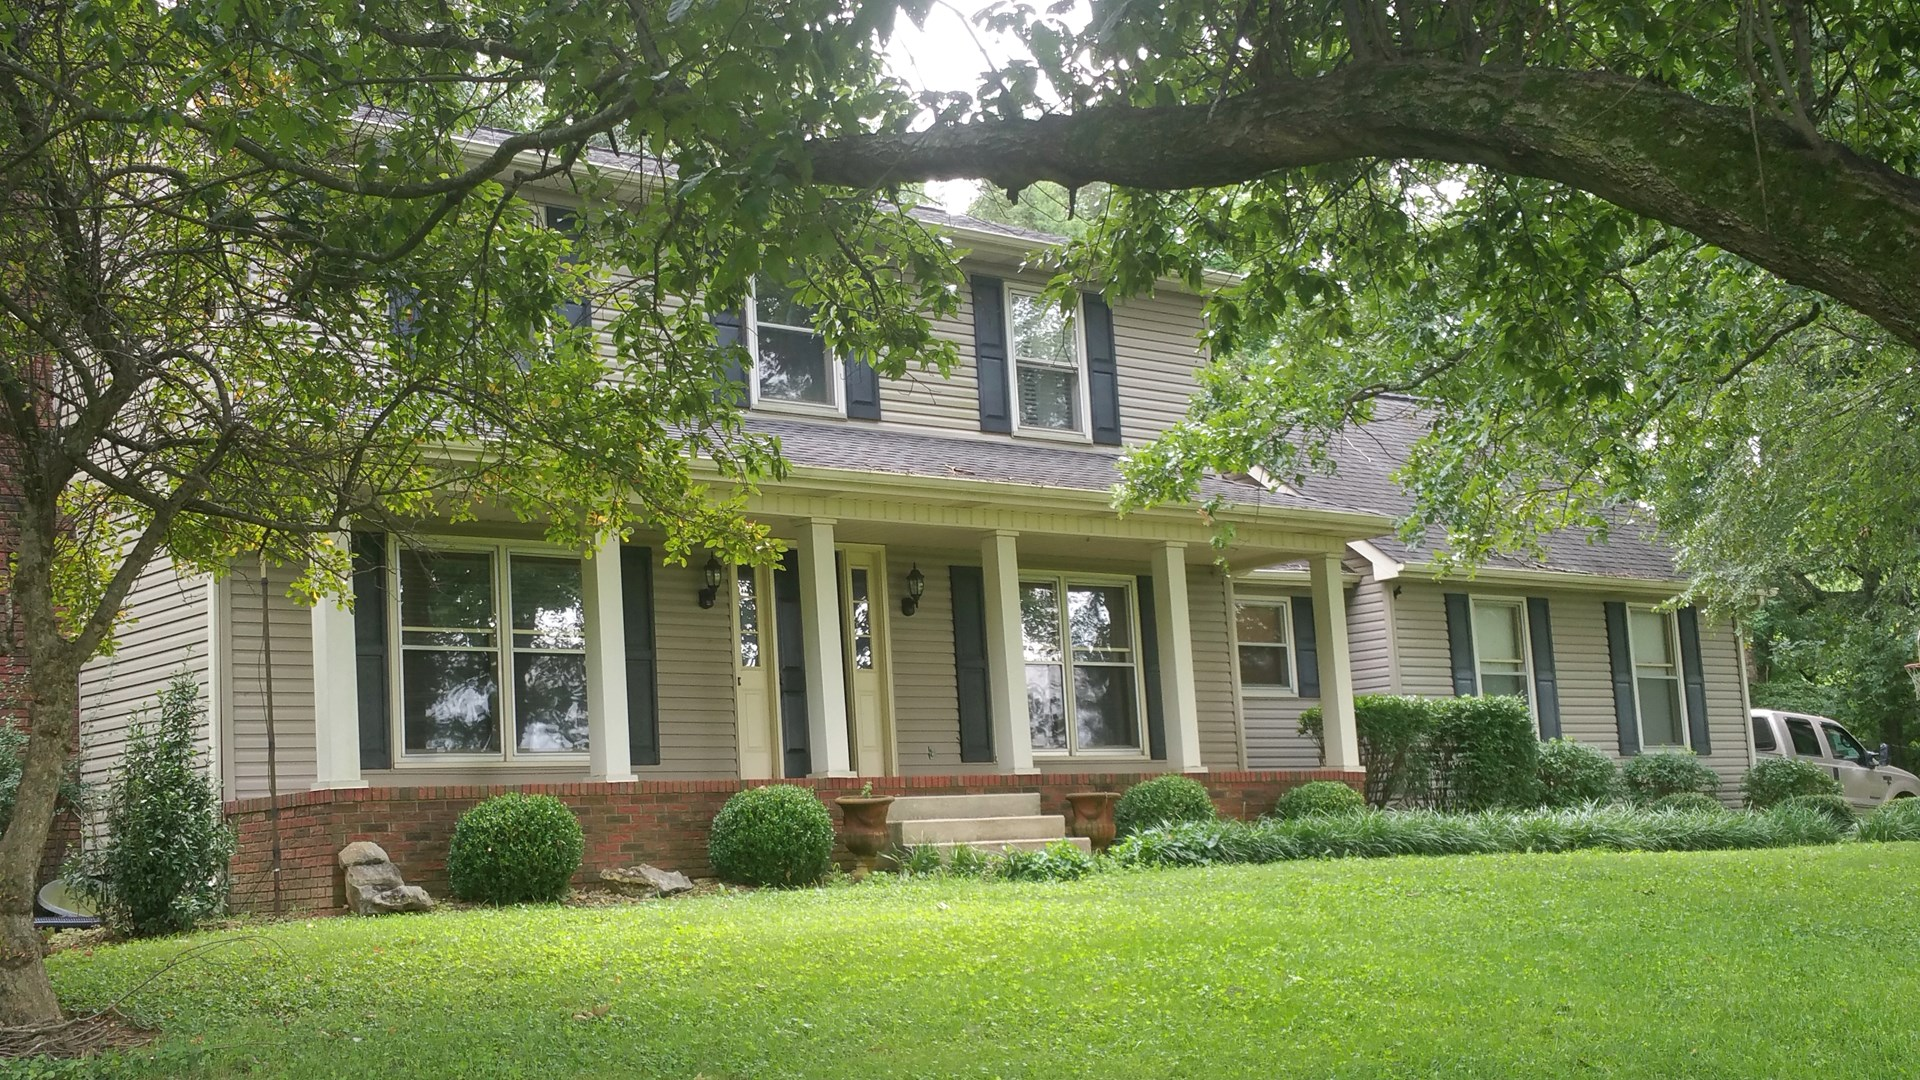 4 bedroom 2 bath country home for sale near Franklin, Ky.